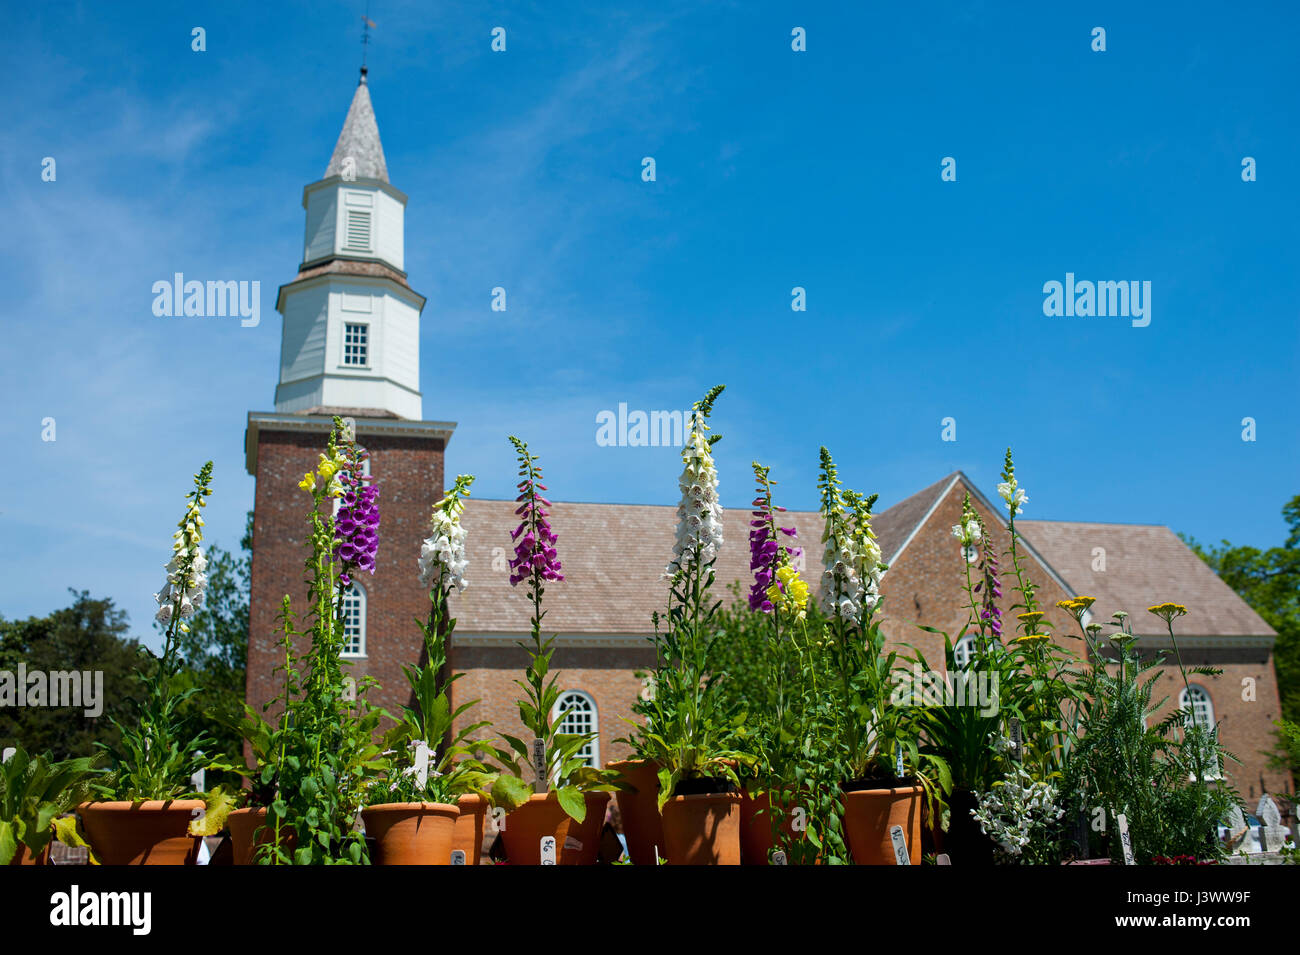 USA Virginia VA Colonial Williamsburg Bruton Parish Episcopal Church on Duke of Gloucester Street with foxgloves - Stock Image